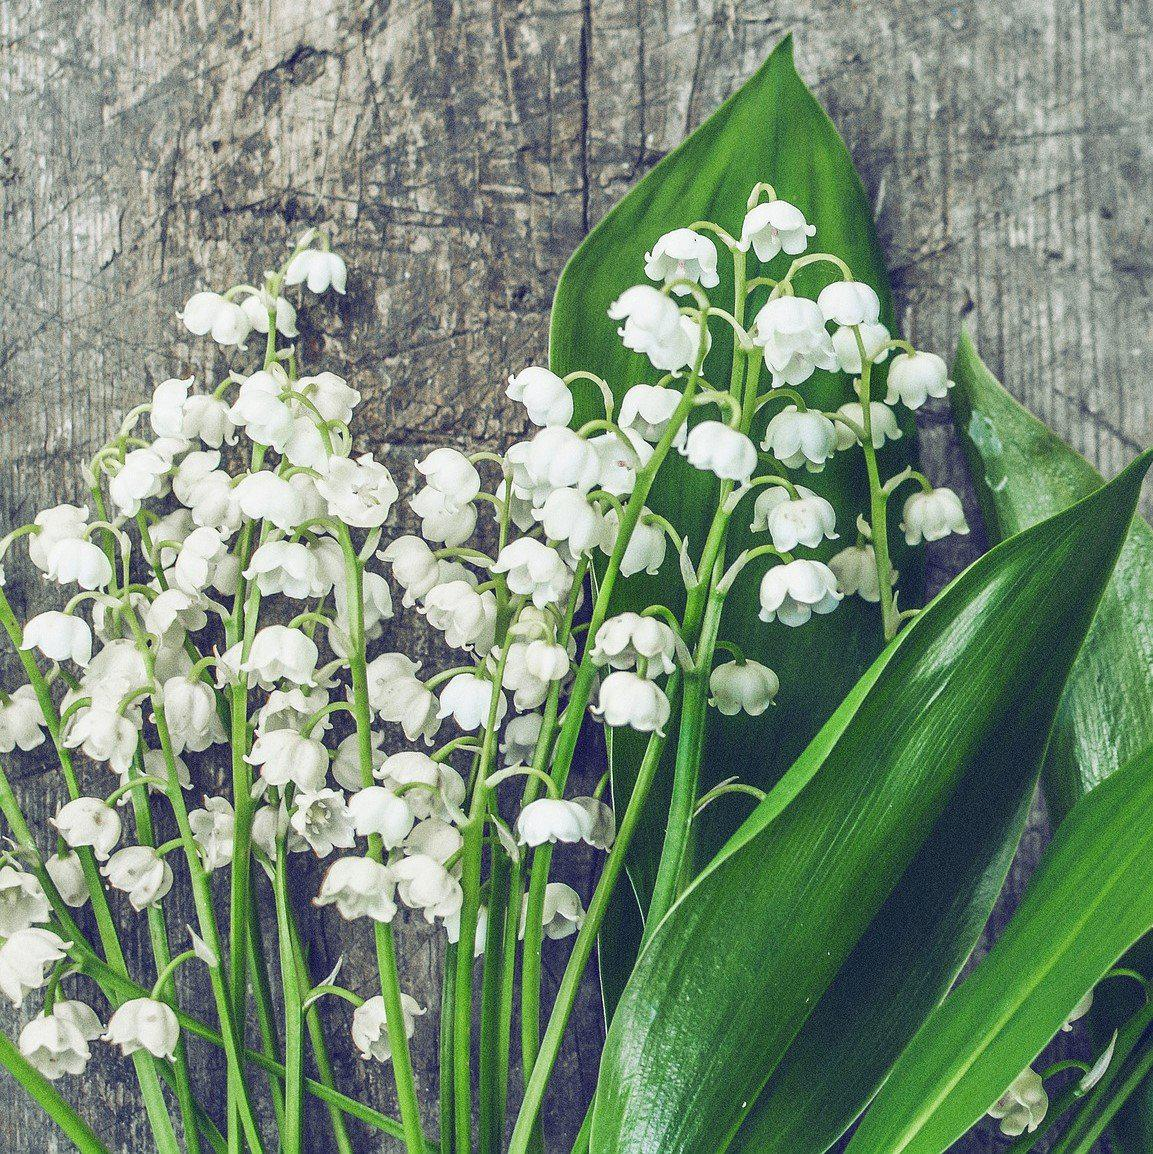 Lily Of The Valley Bouquet: 6 Flowering Lily Of The Valley